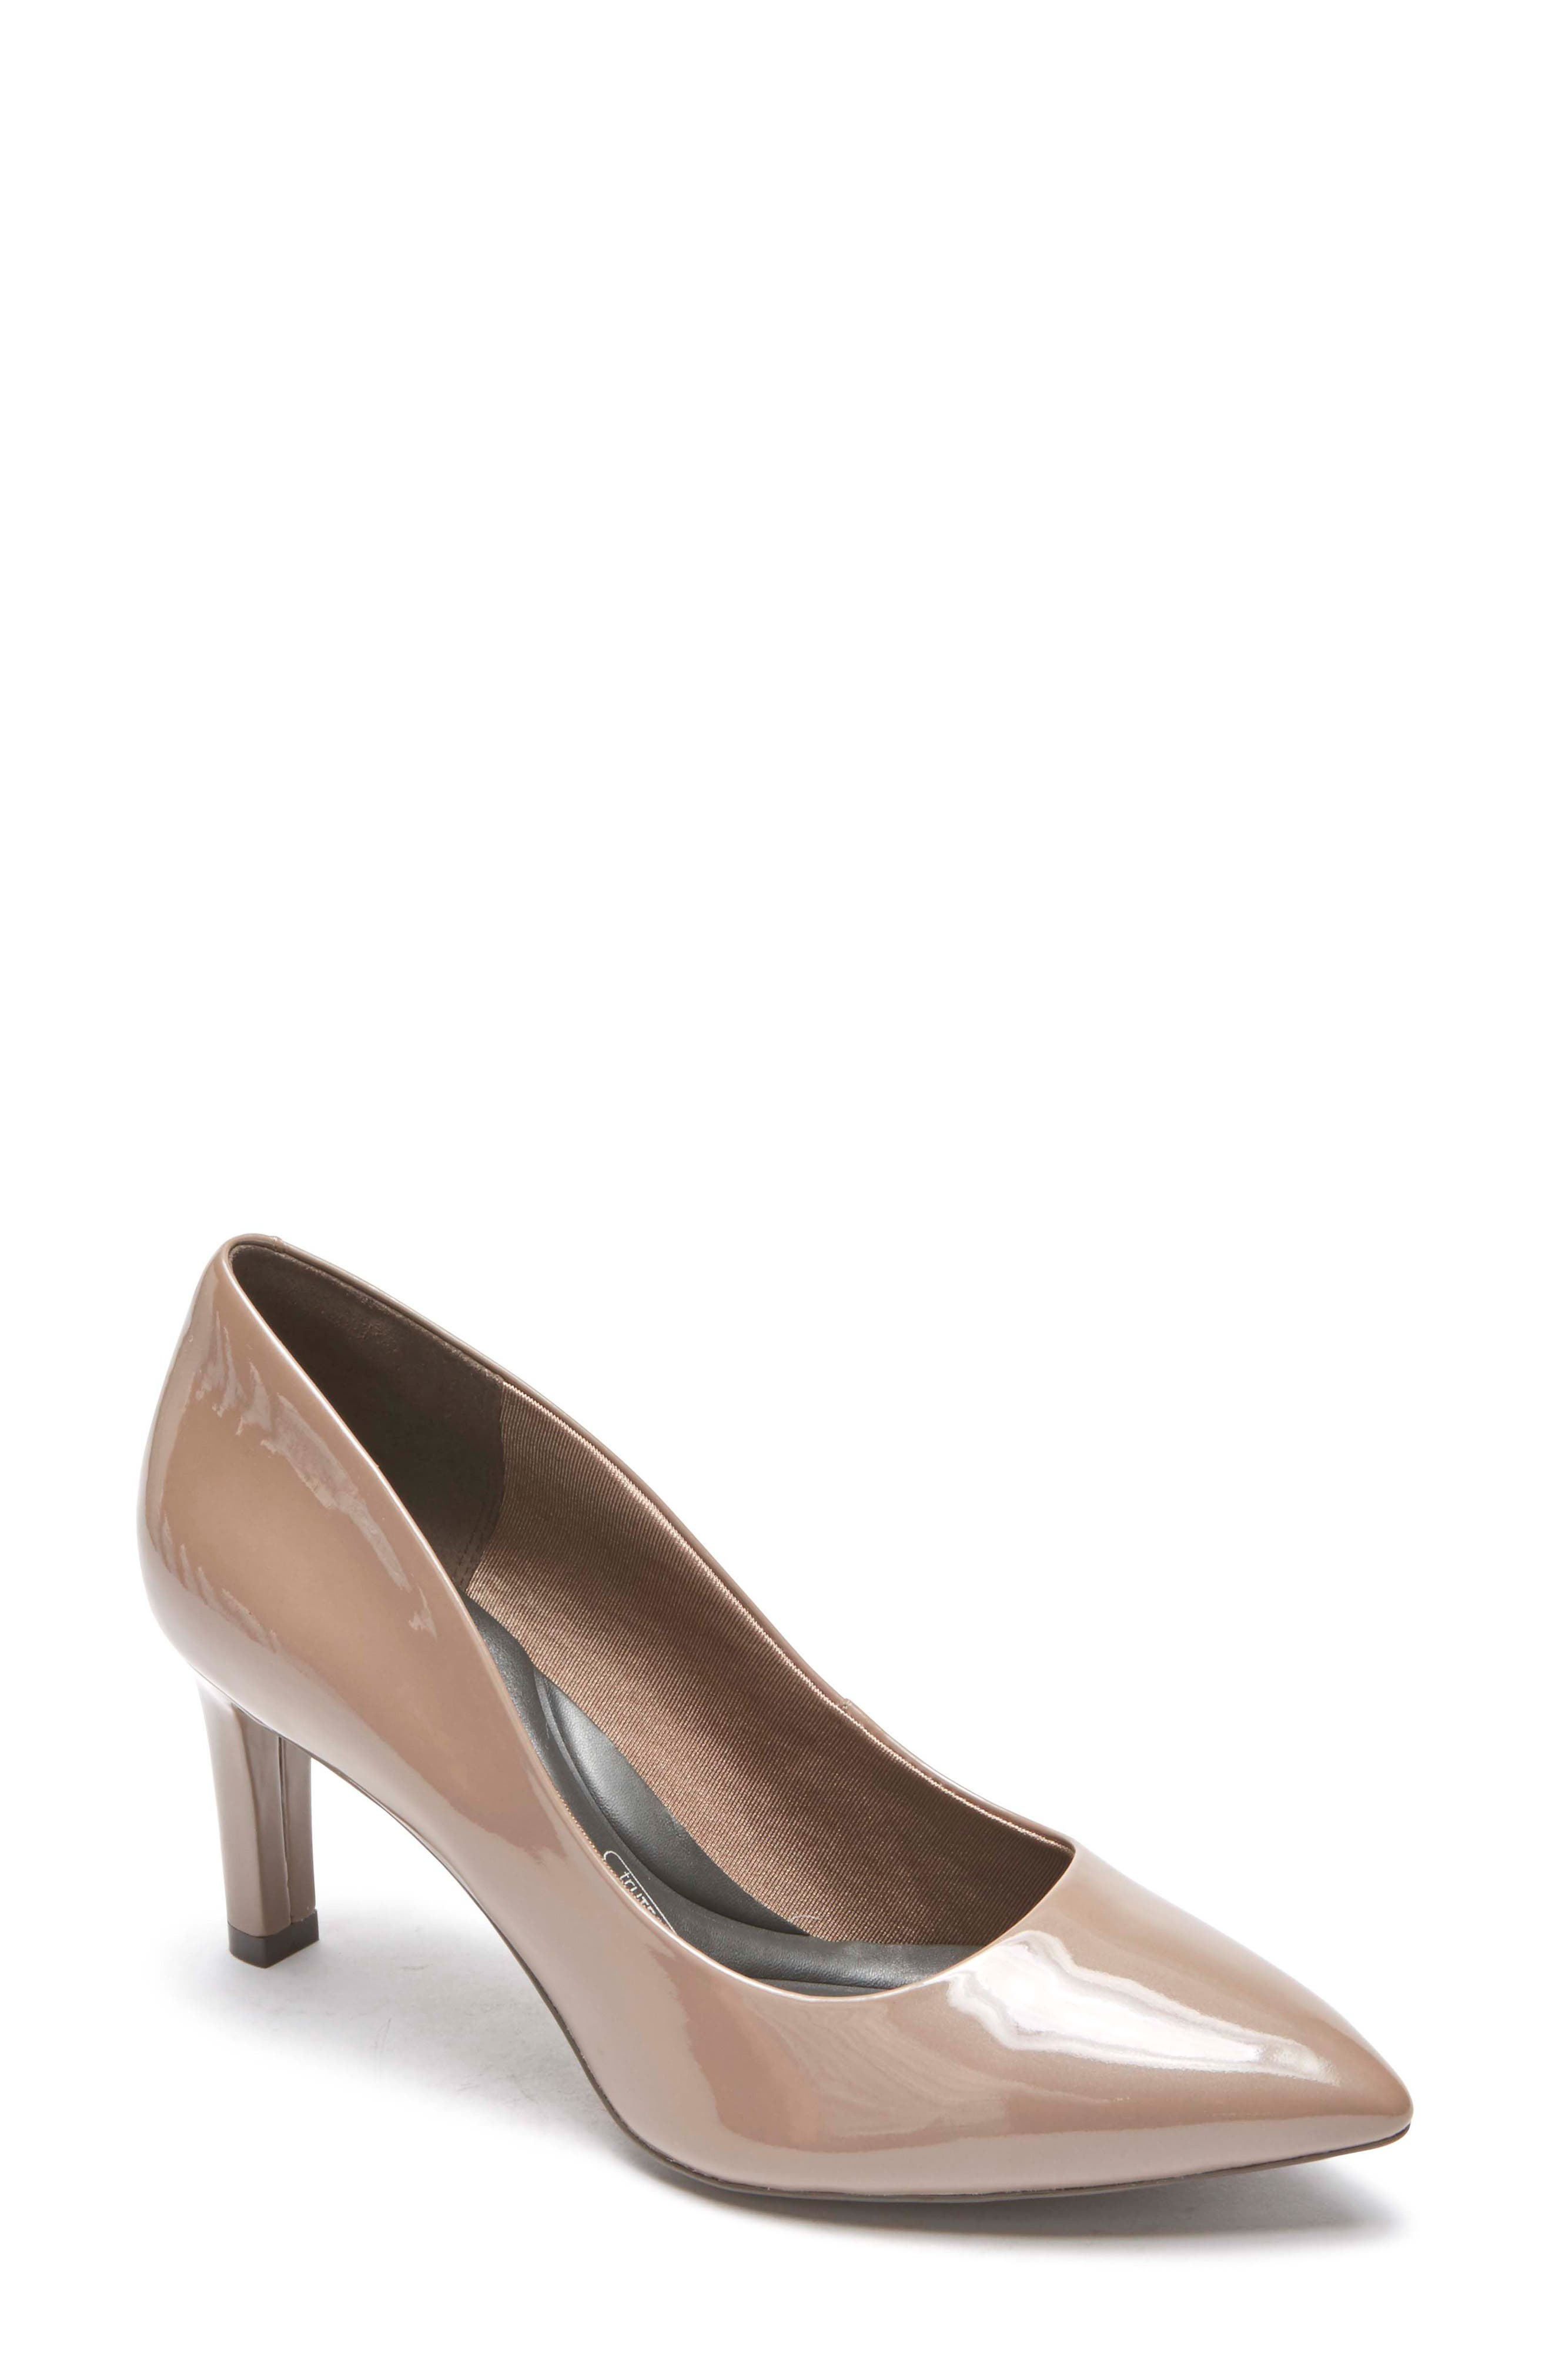 Main Image - Rockport Total Motion Luxe Valerie Pump (Women)